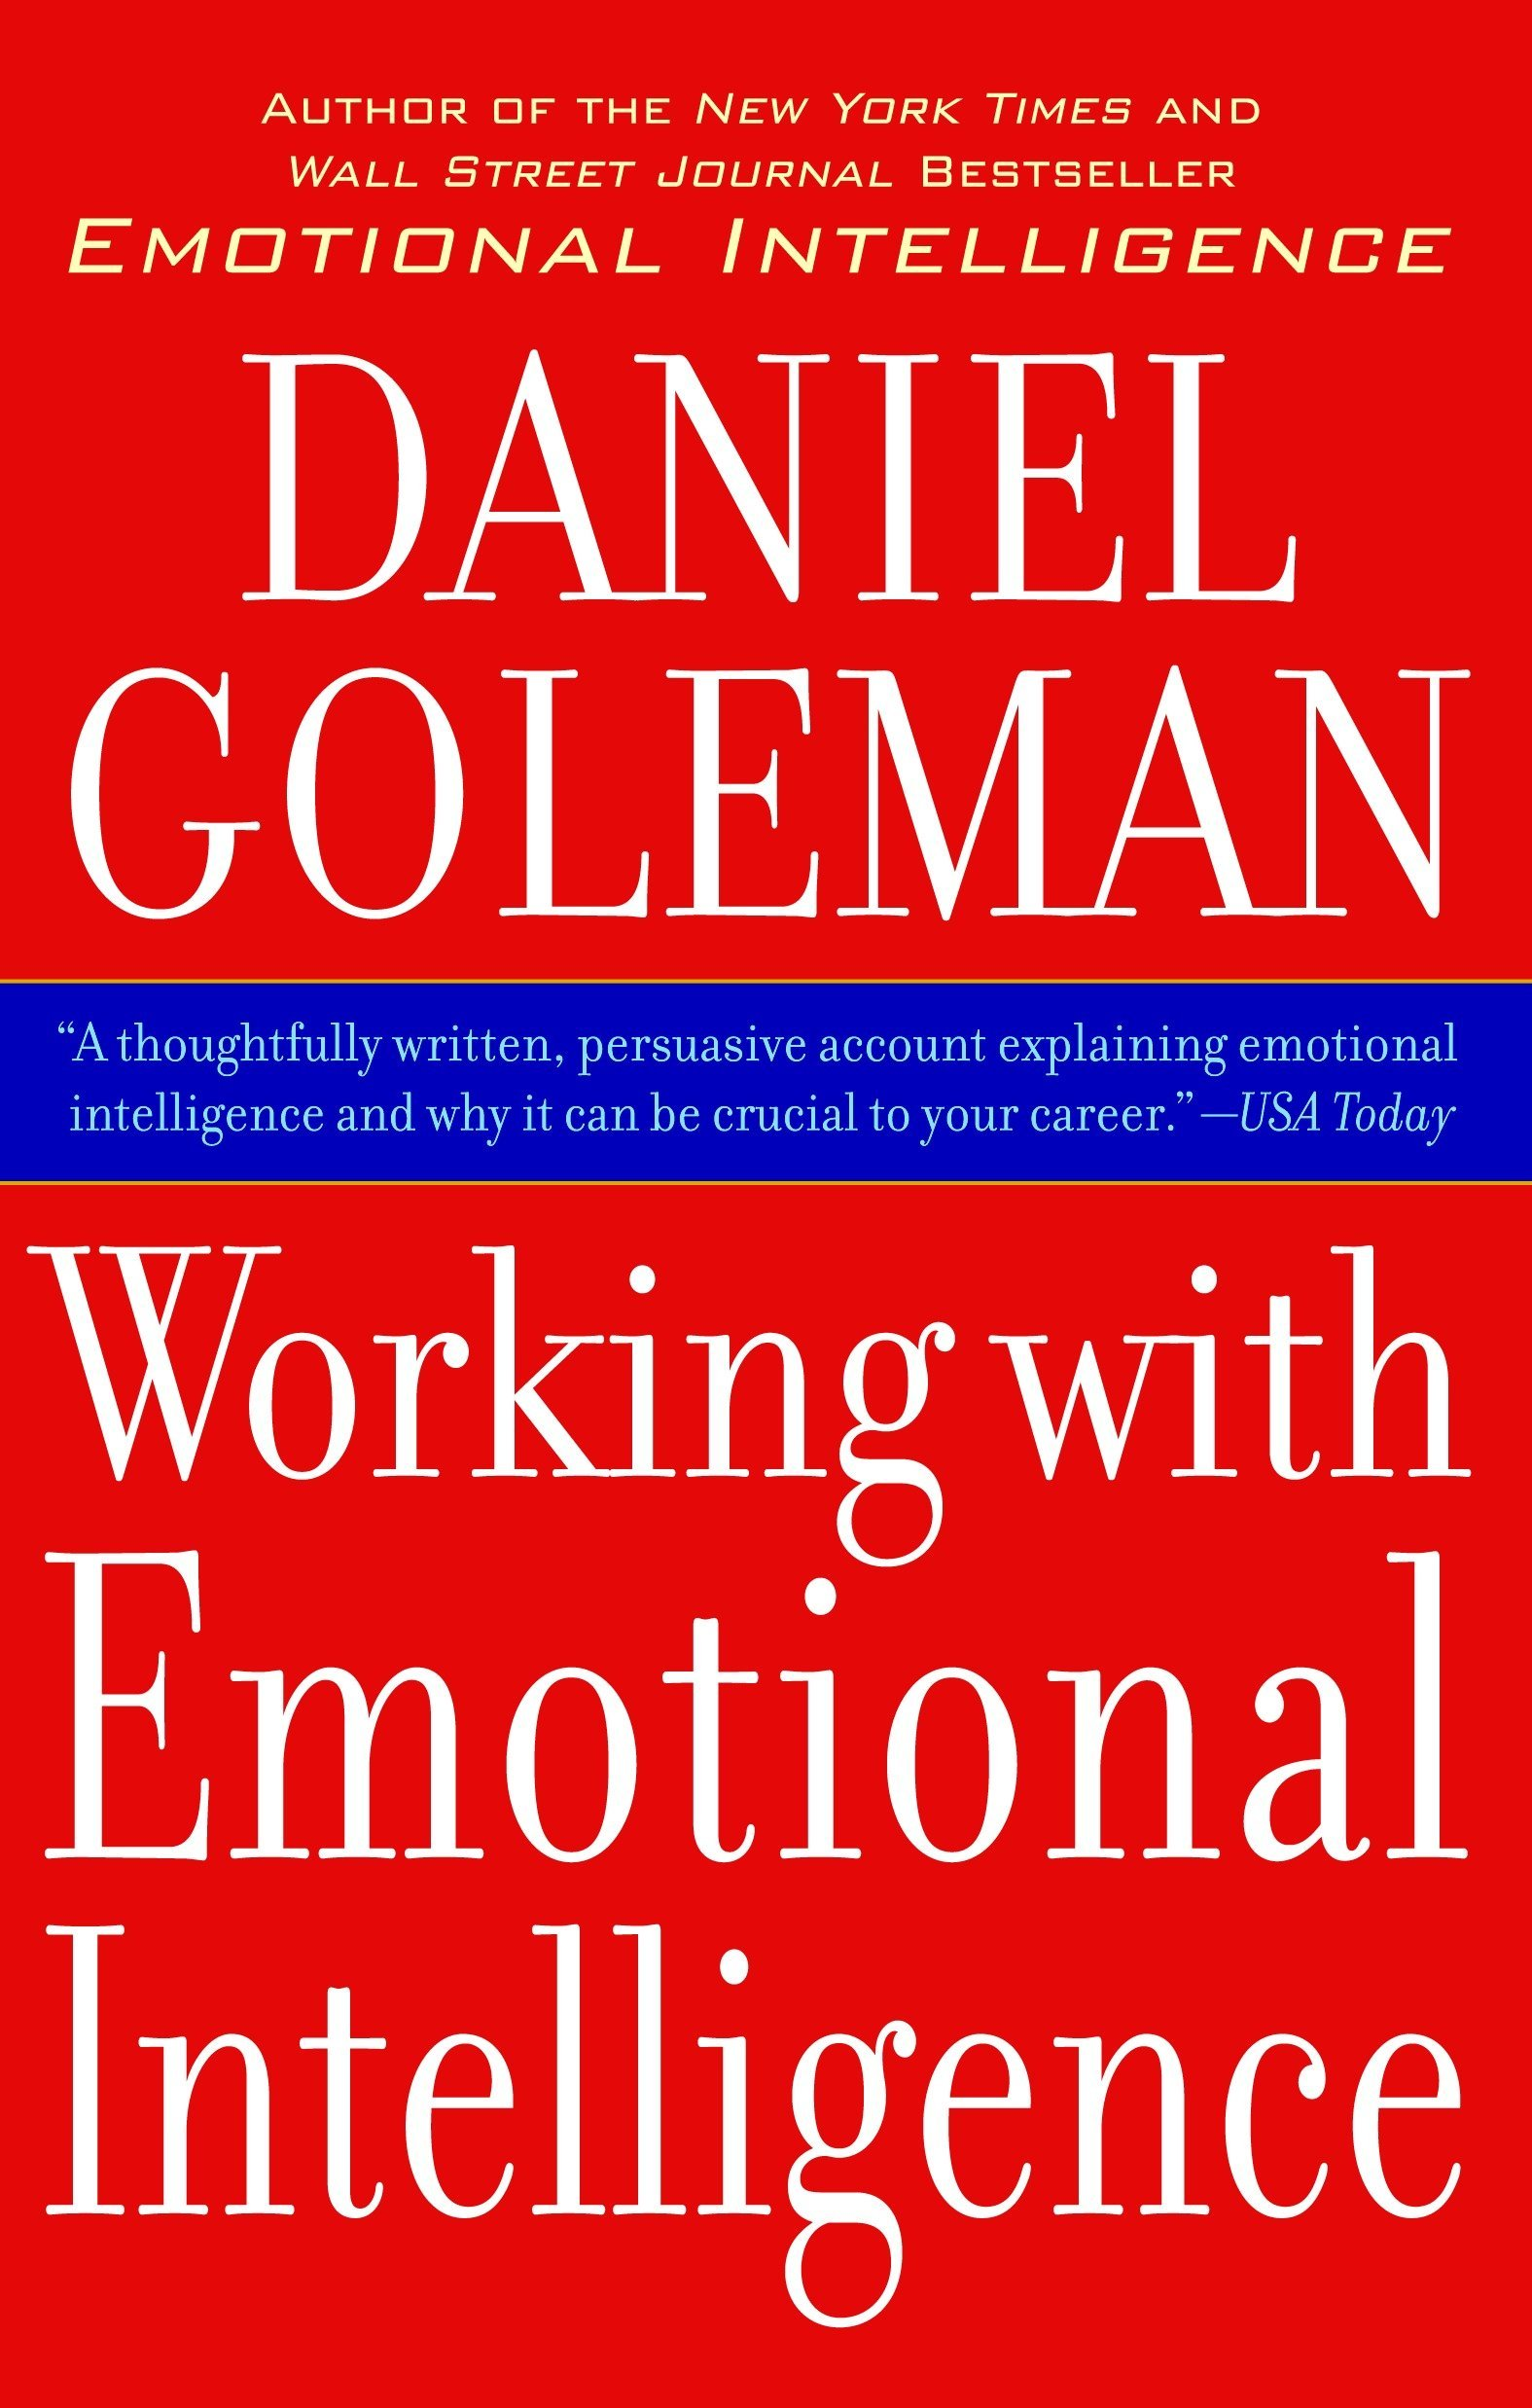 Working with Emotional Intelligence: Daniel Goleman: 9780553378580